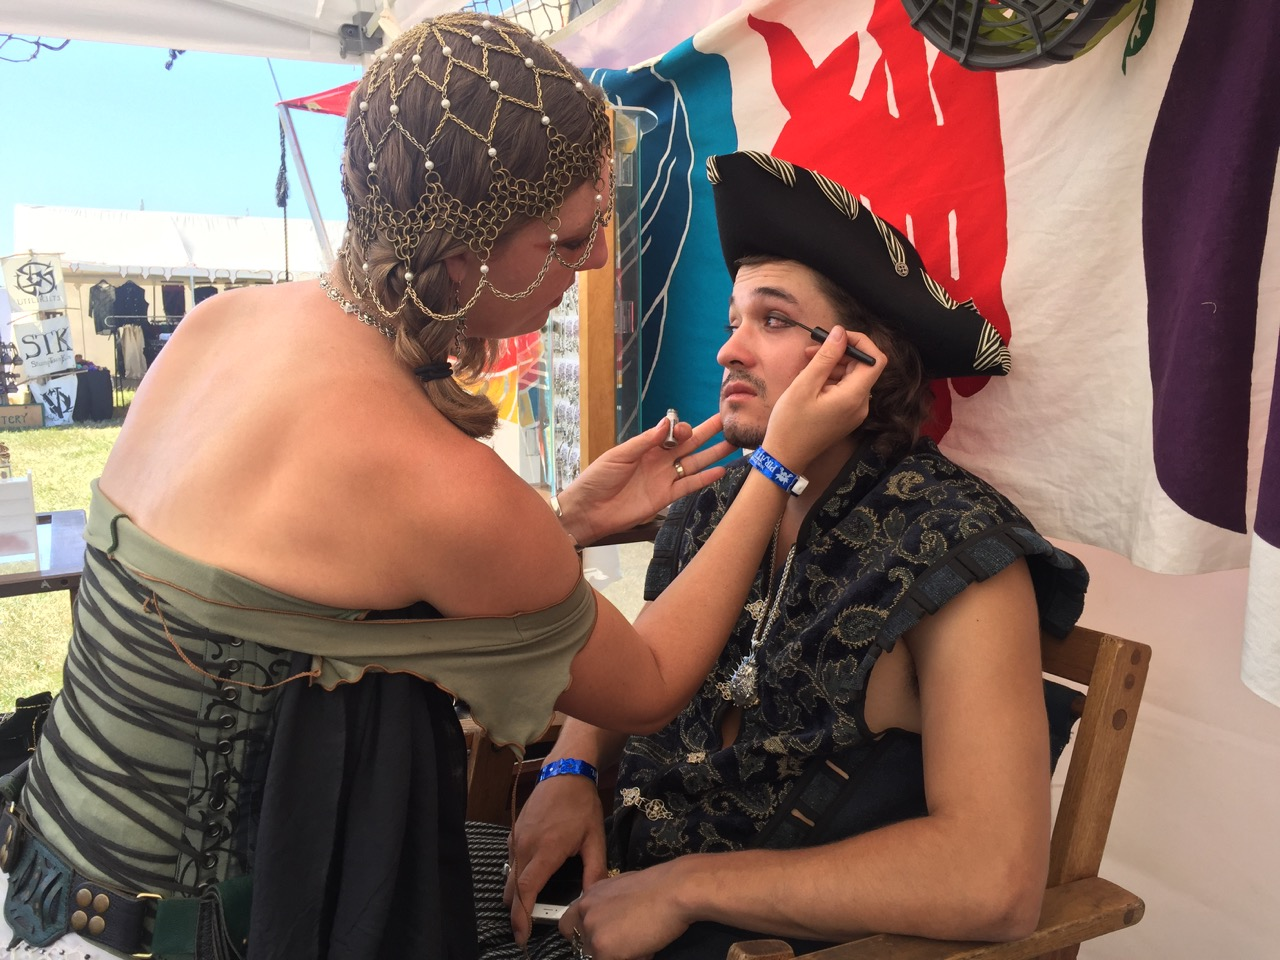 Make up time for Pirate John